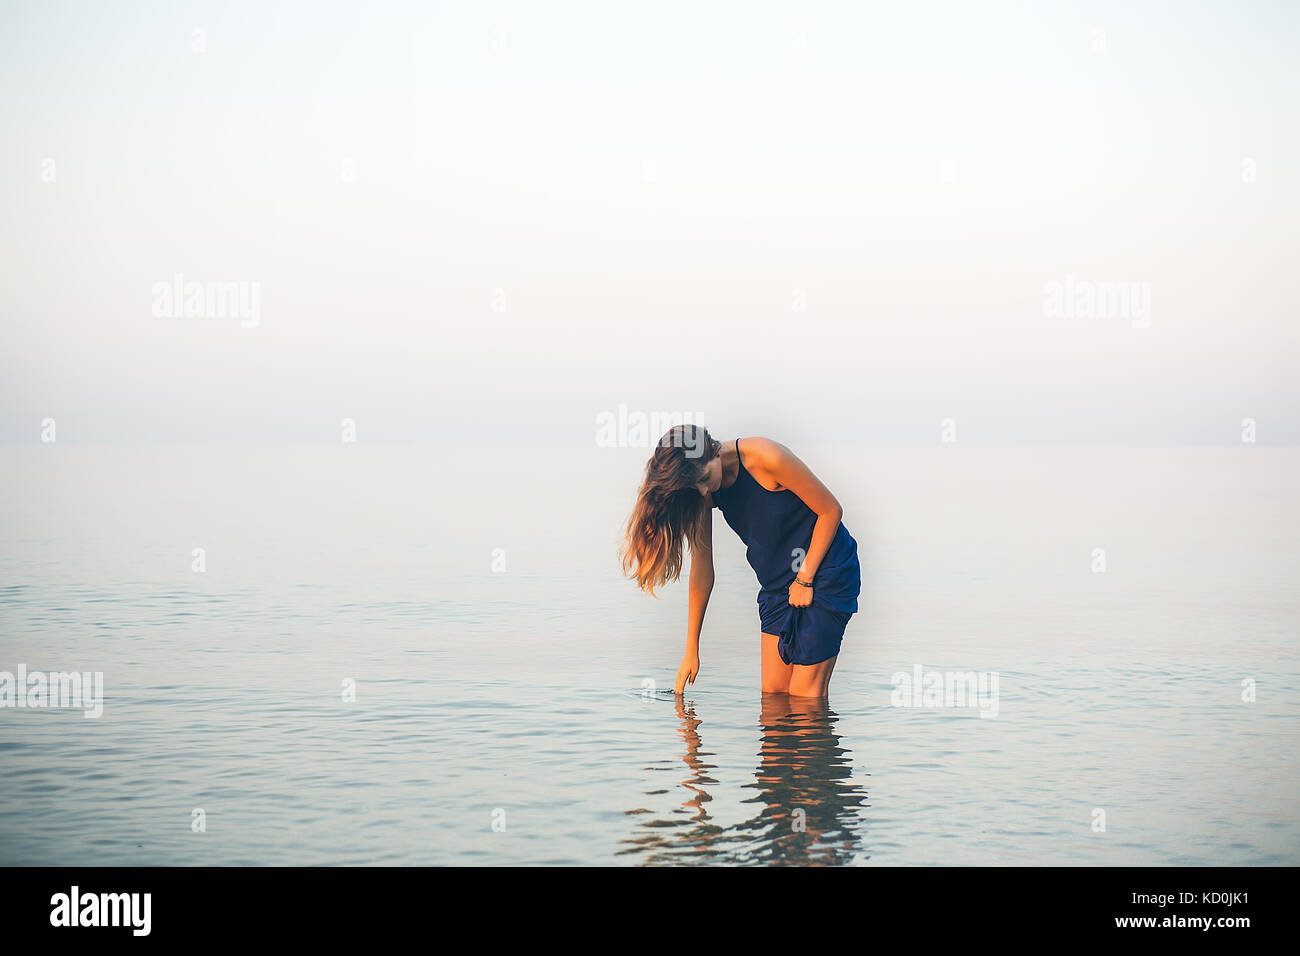 Young woman knee deep in sea touching surface, Odessa, Ukraine - Stock Image